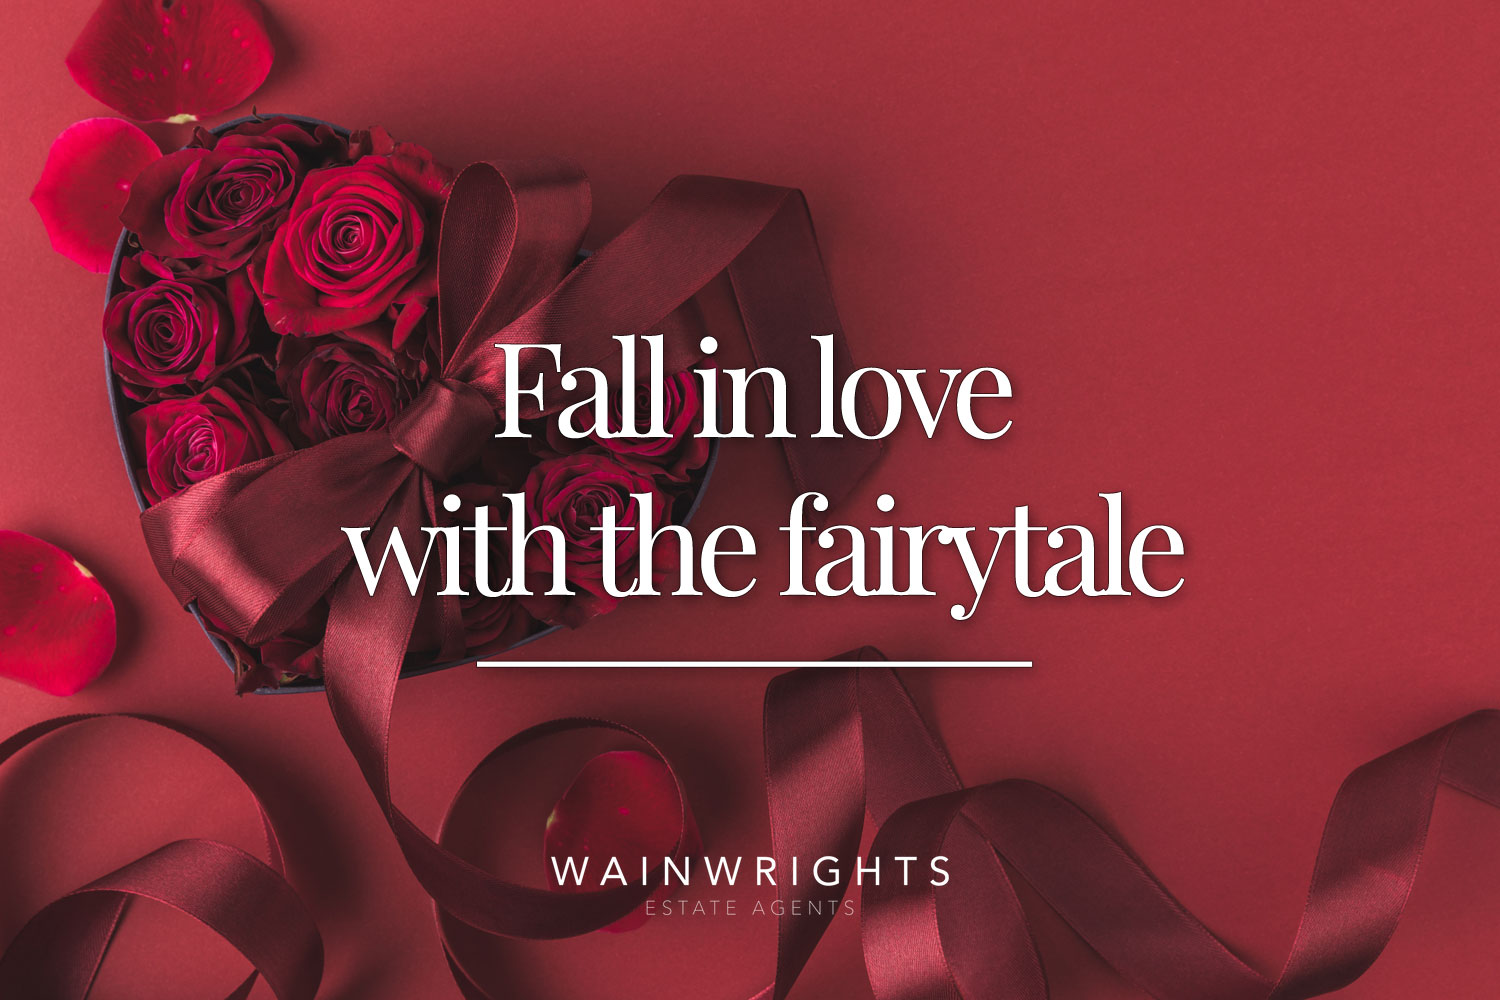 Fall-in-love-with-the-fairytale-2